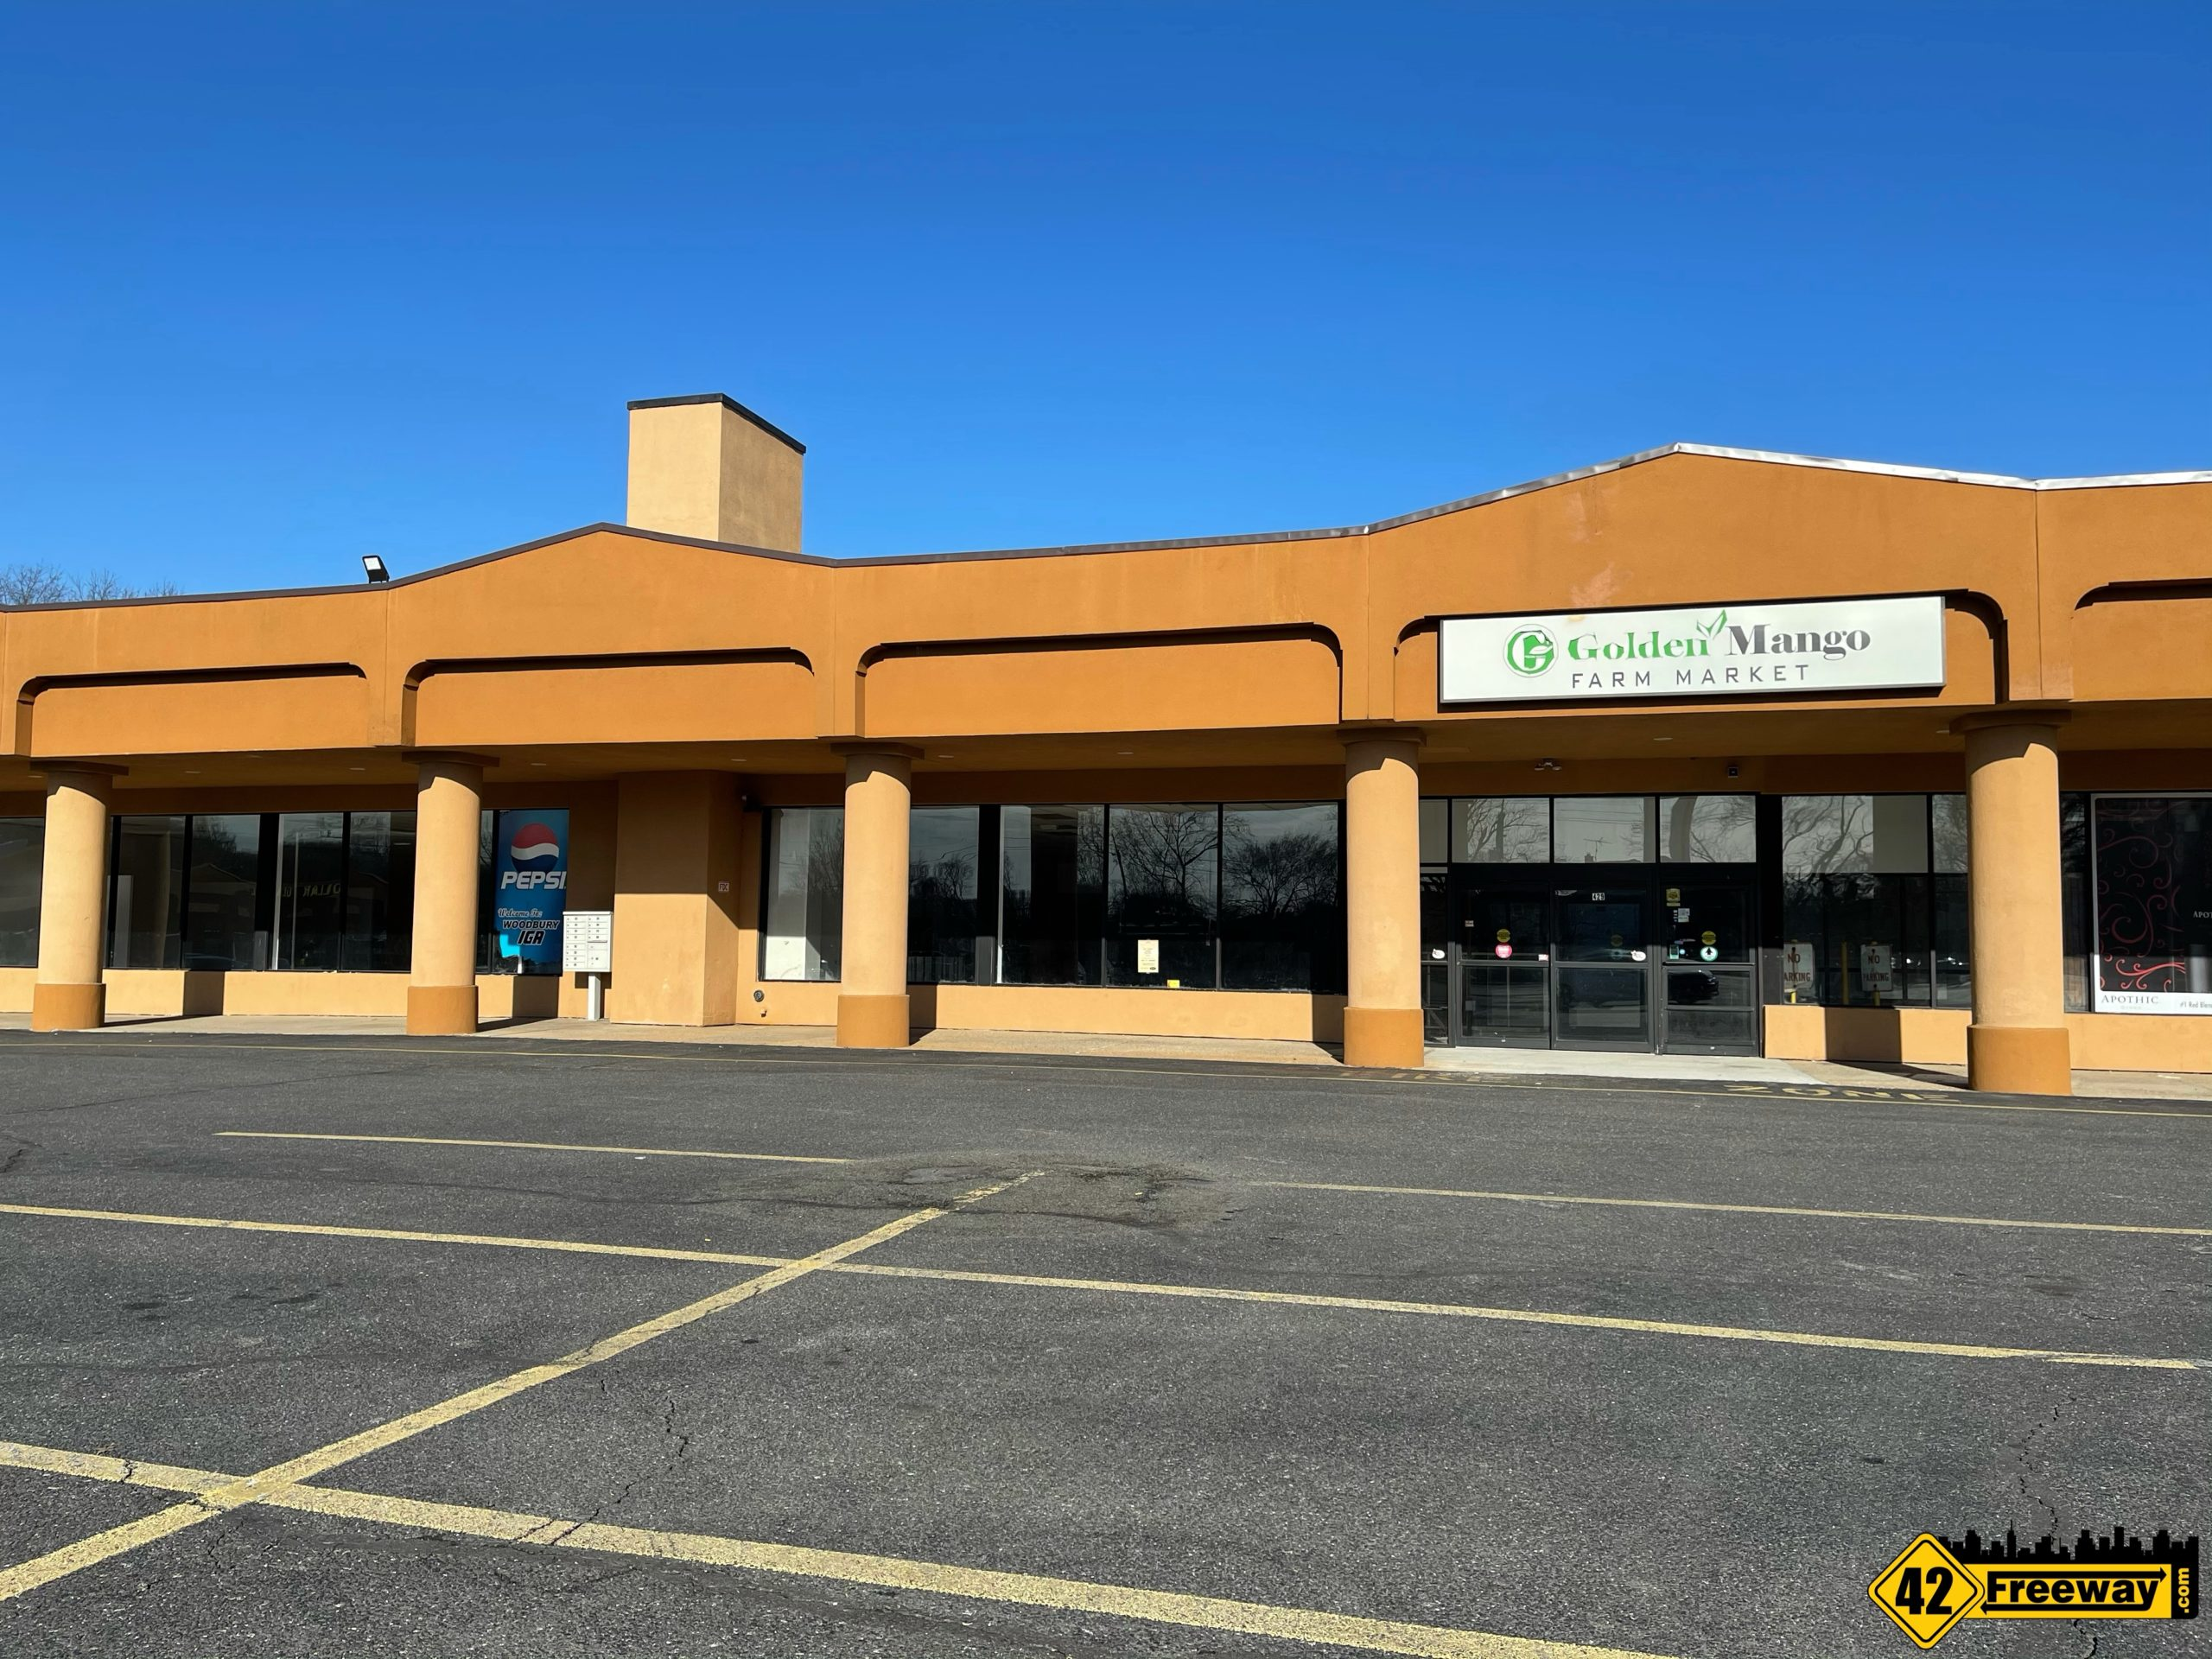 Antiques on Evergreen Moving into Martin's/Sickel Plaza on Evergreen Ave Woodbury!  Targeting May 1st!